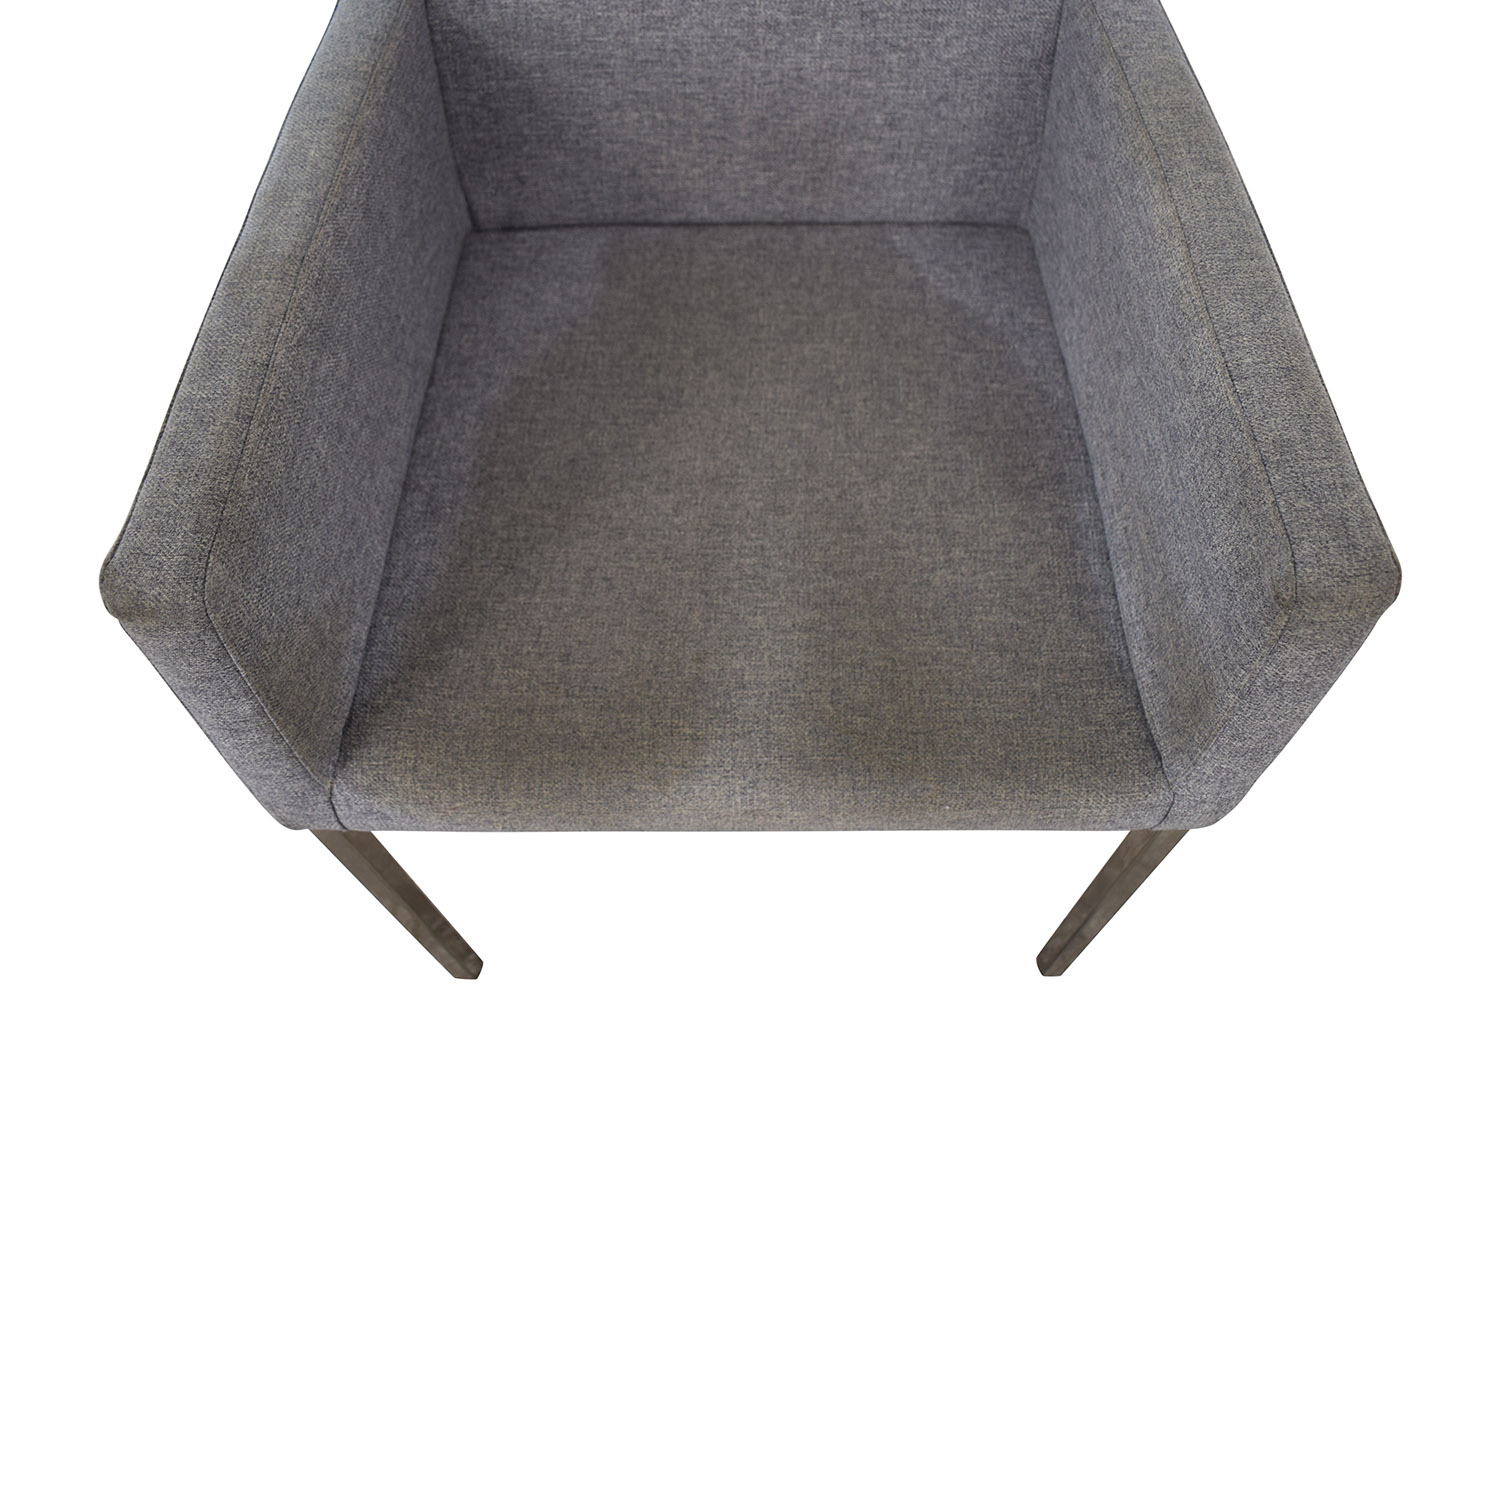 CB2 CB2 Grey and Chrome Chair price